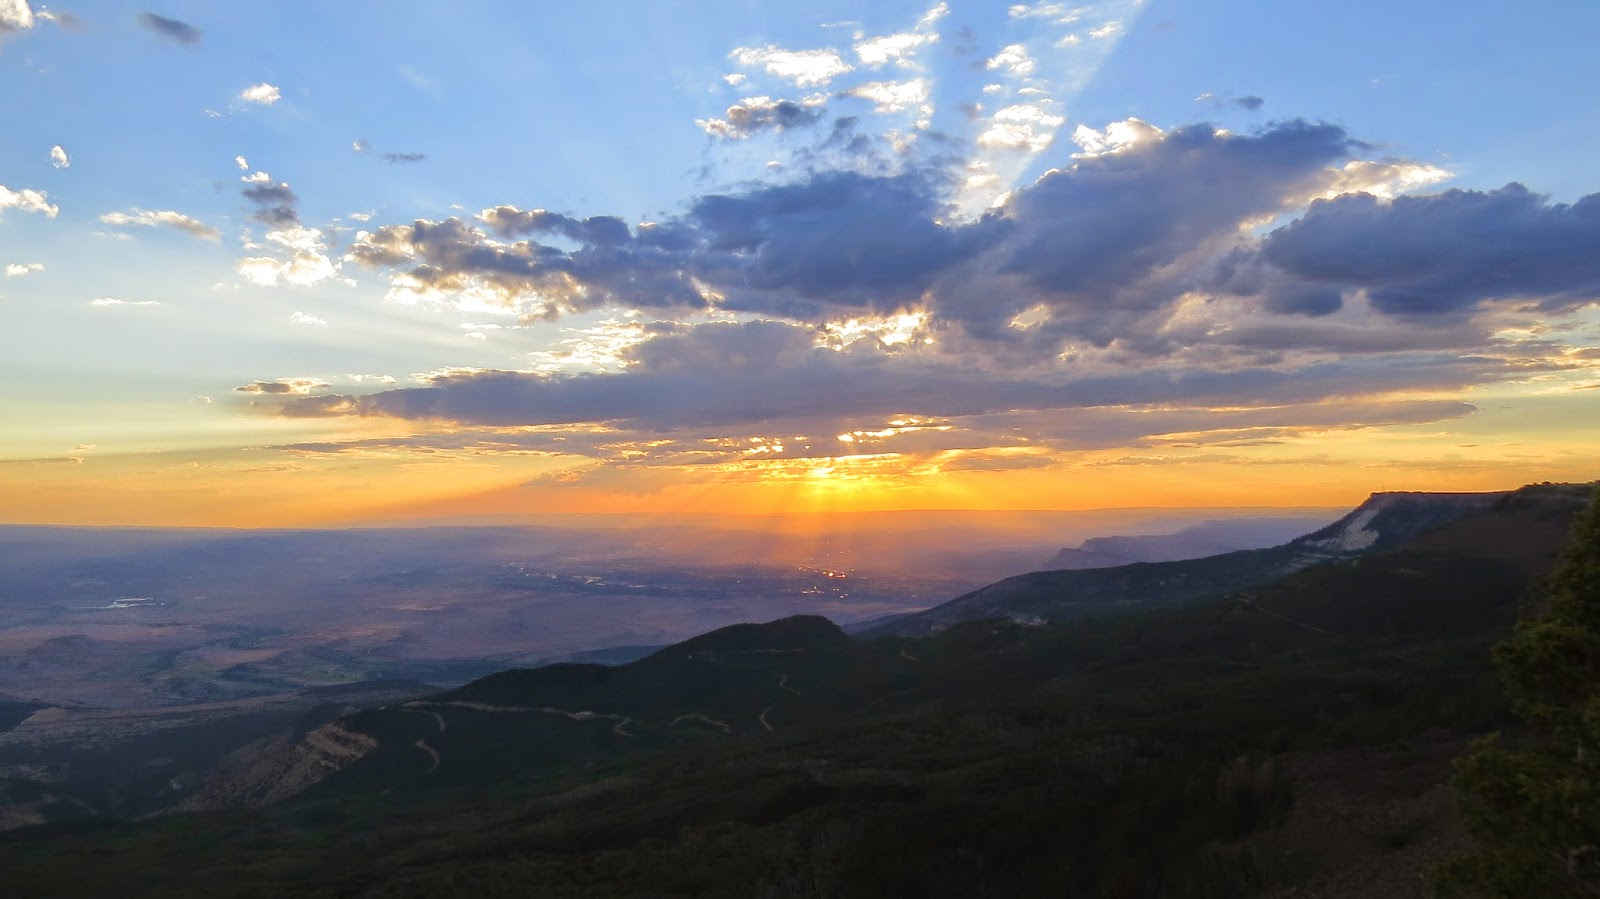 Sunset looking towards Utah from Grand Mesa, Colorado